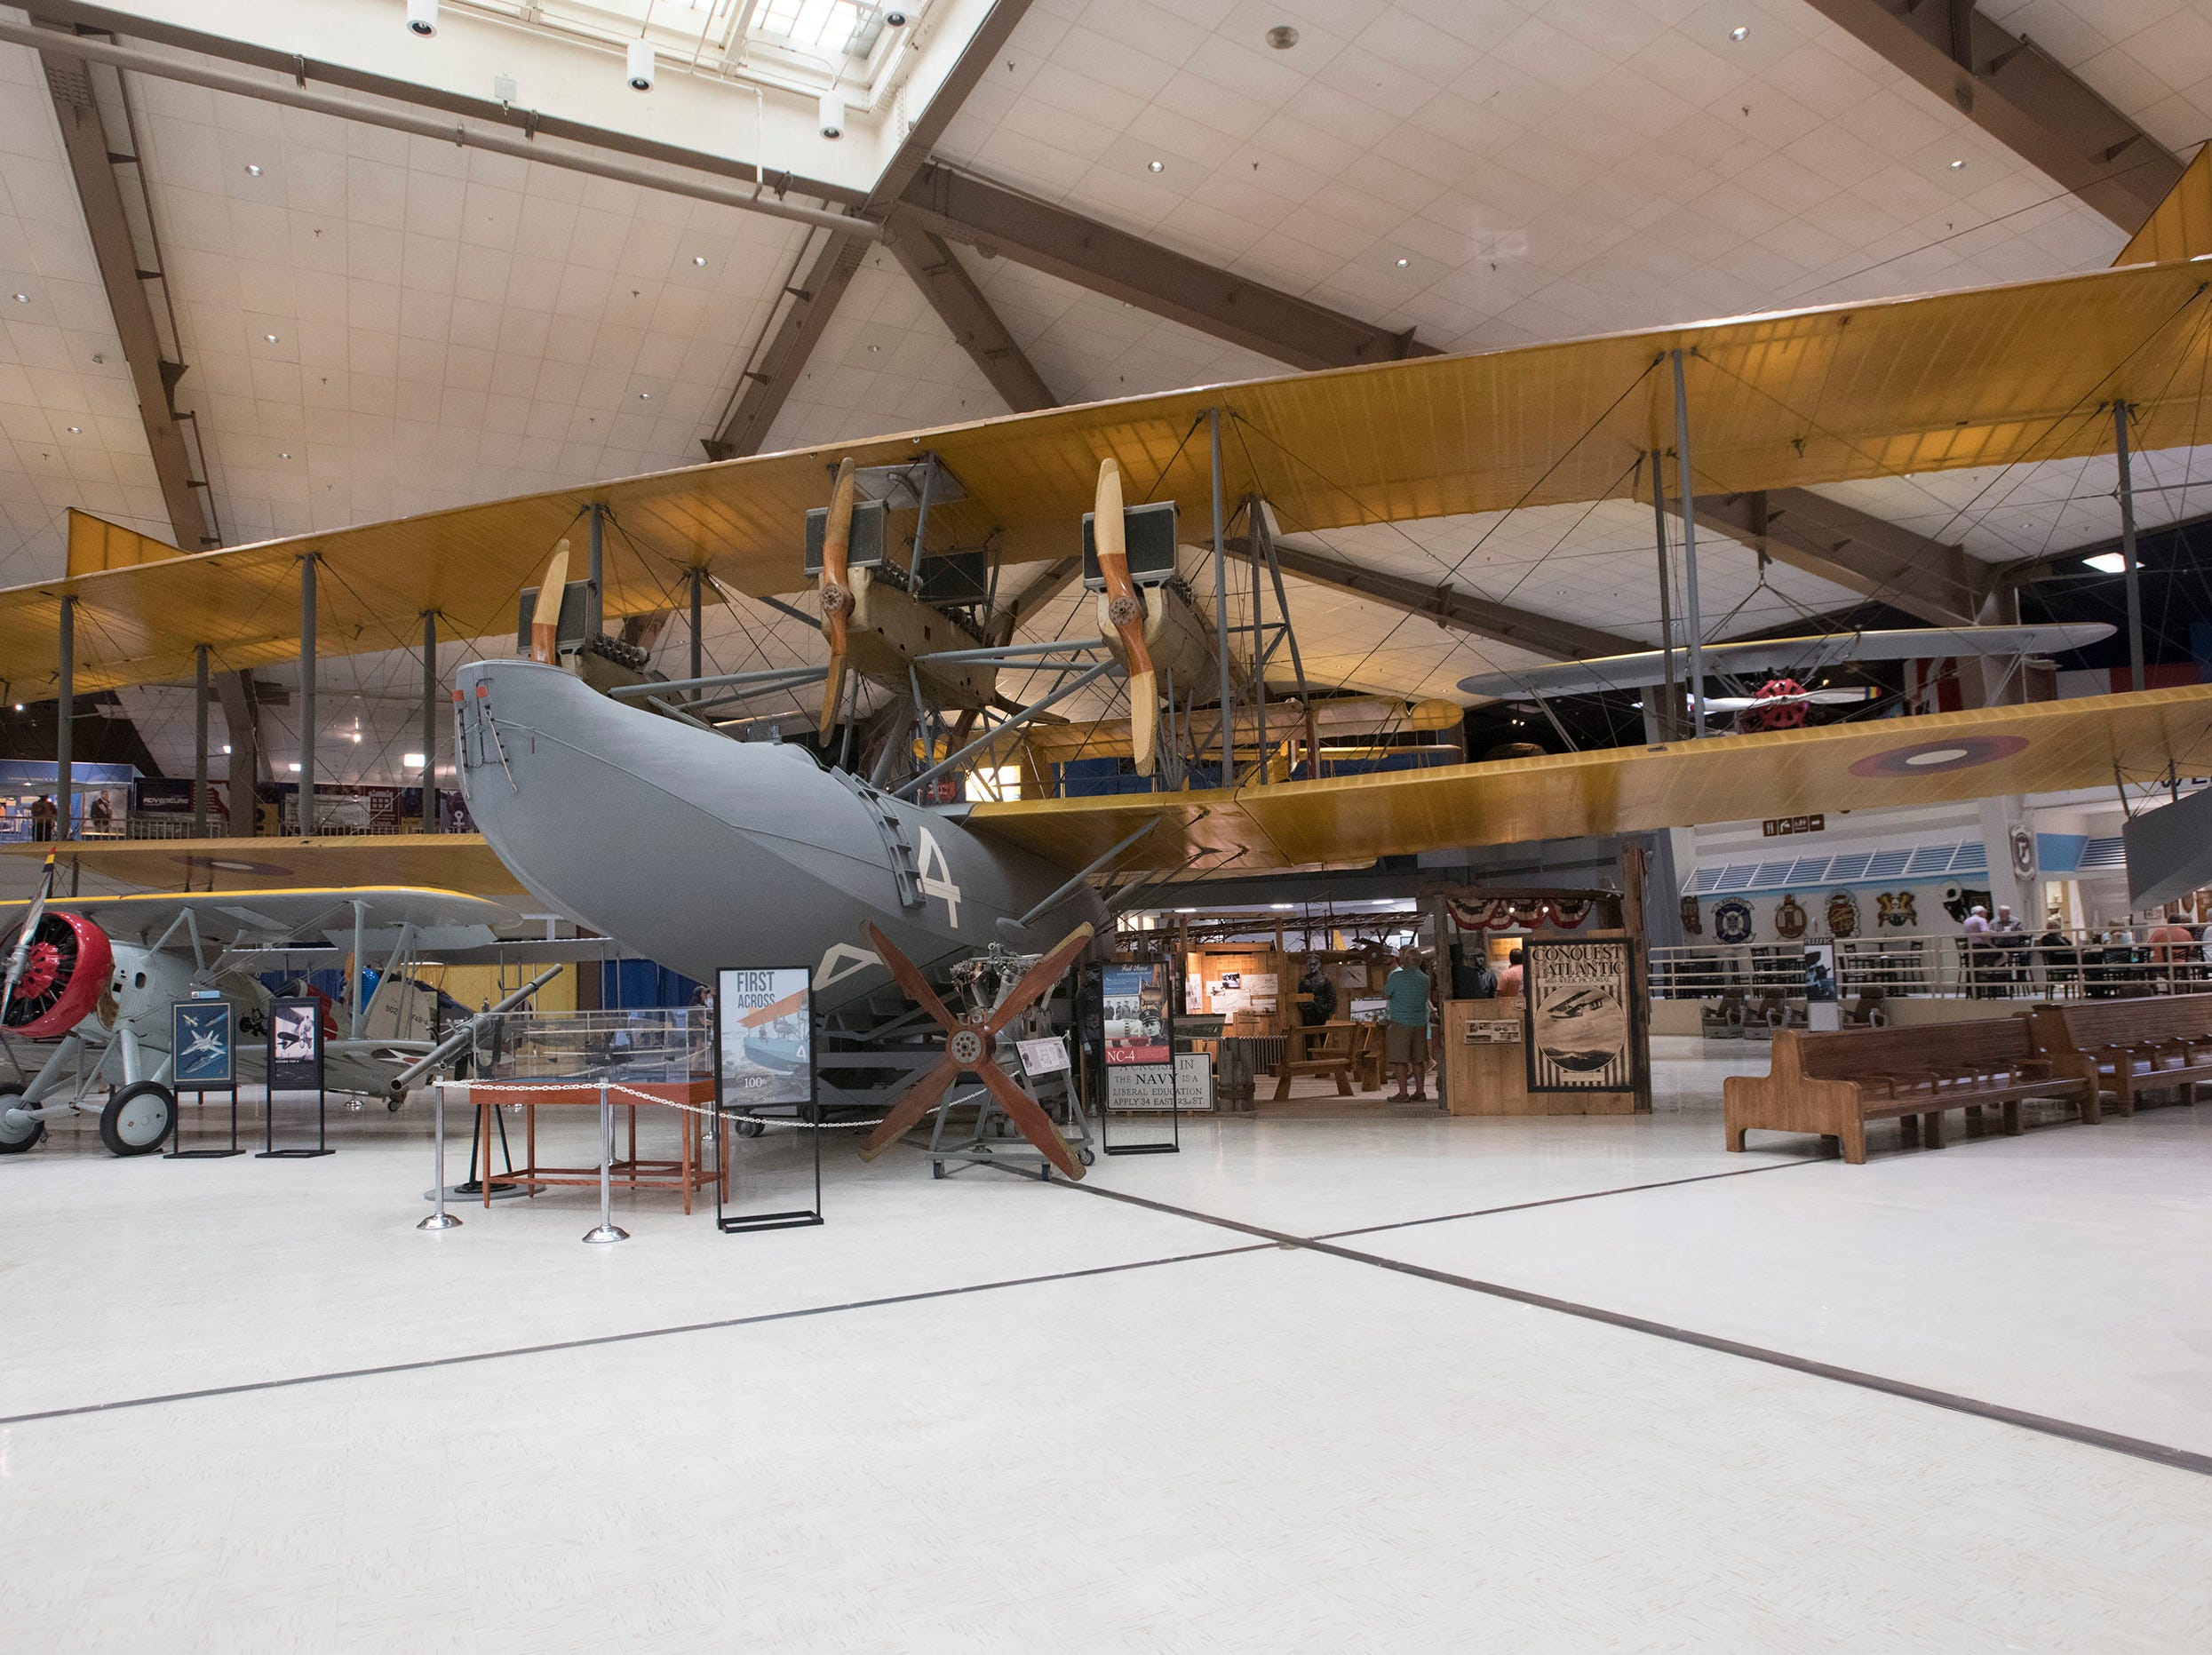 Visitors get a good look at the NC-4 seaplane on display at the National Naval Aviation Museum on Thursday, May 9, 2019. The National Naval Aviation Museum is celebrating the 100th anniversary of the Navy's flight across the Atlantic Ocean in May.